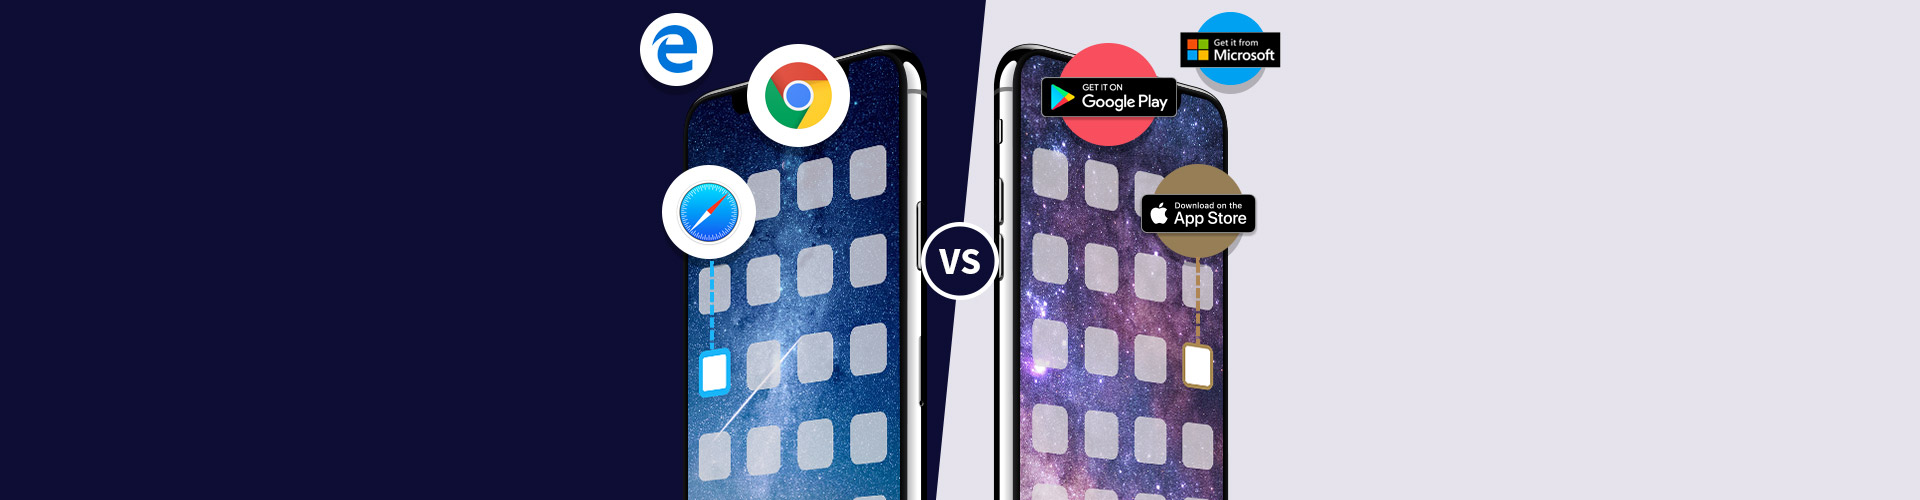 Native & Progressive Web Apps (PWAs): What's the difference?